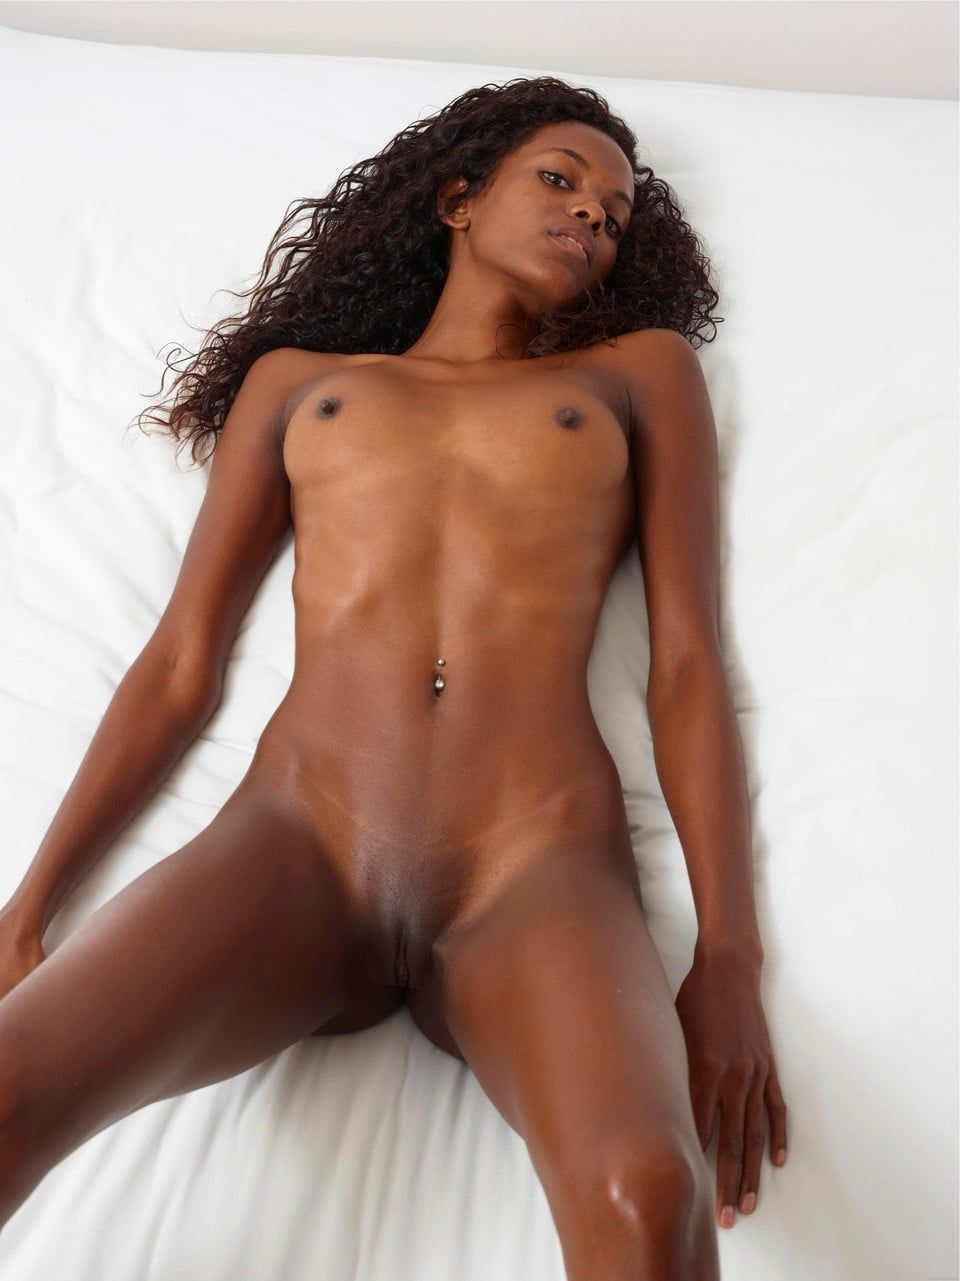 Best naked black women pics necessary